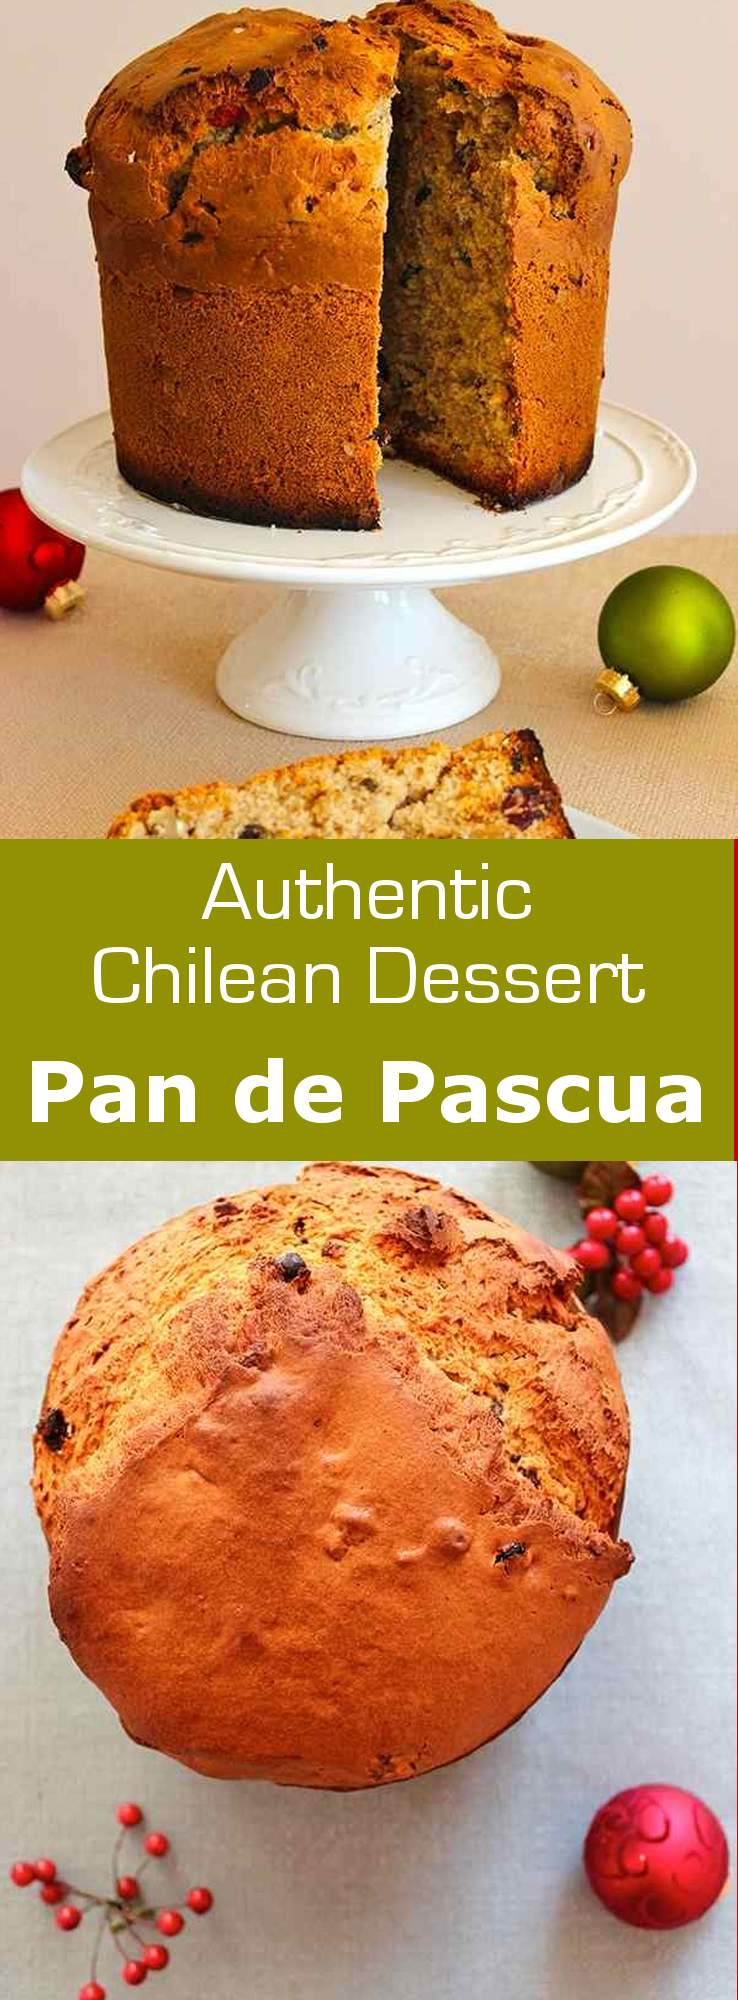 Pan de Pascua is a Chilean spiced cake with dried fruits and nuts that is traditionally eaten around Christmas time. #Christmas #dessert #Chile #196flavors